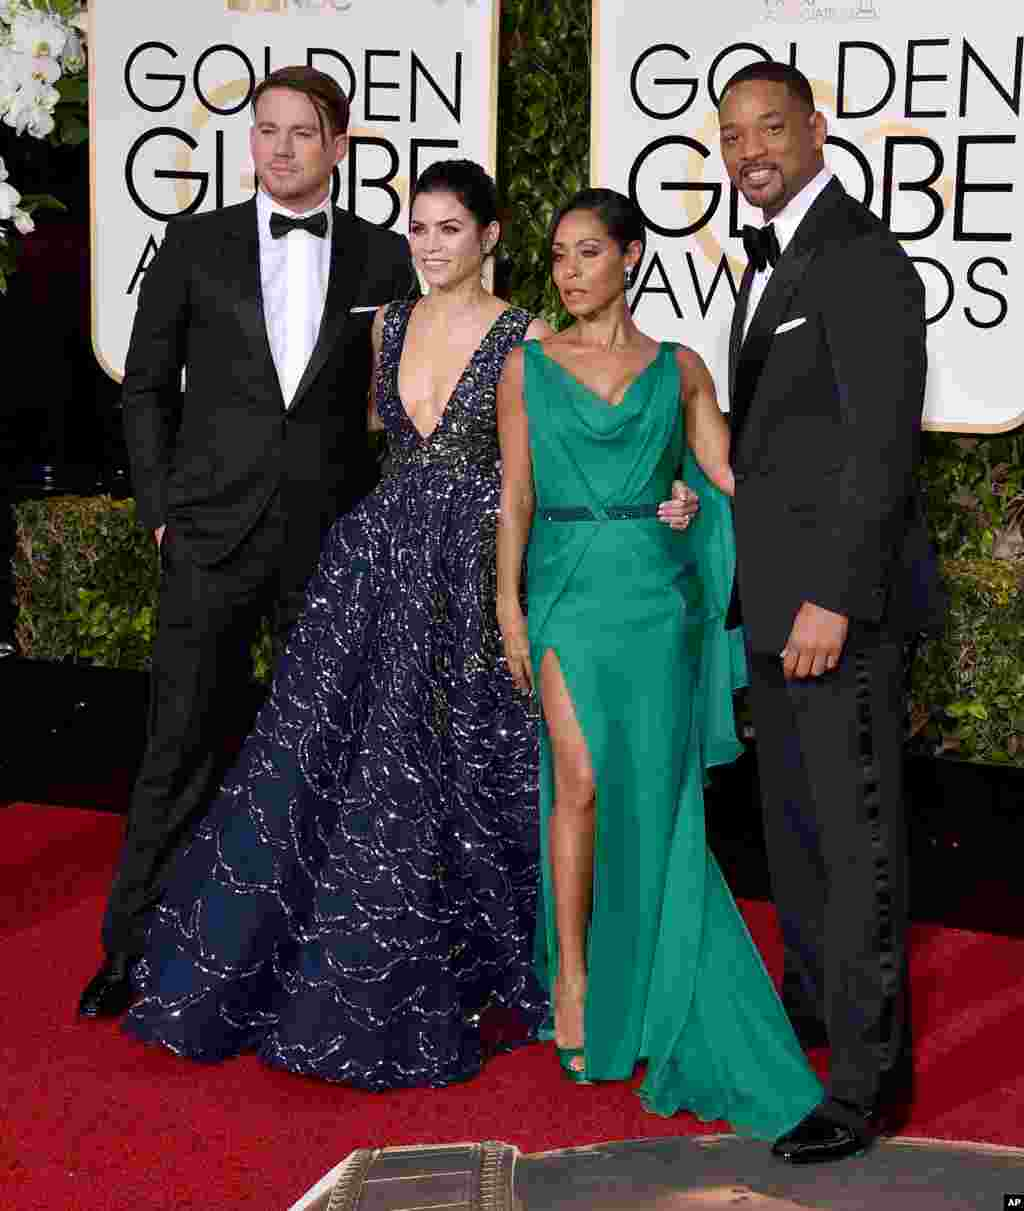 Channing Tatum, from left, Jenna Dewan Tatum, Jada Pinkett Smith, and Will Smith arrive at the 73rd annual Golden Globe Awards on Jan. 10, 2016, at the Beverly Hilton Hotel in Beverly Hills, Calif.